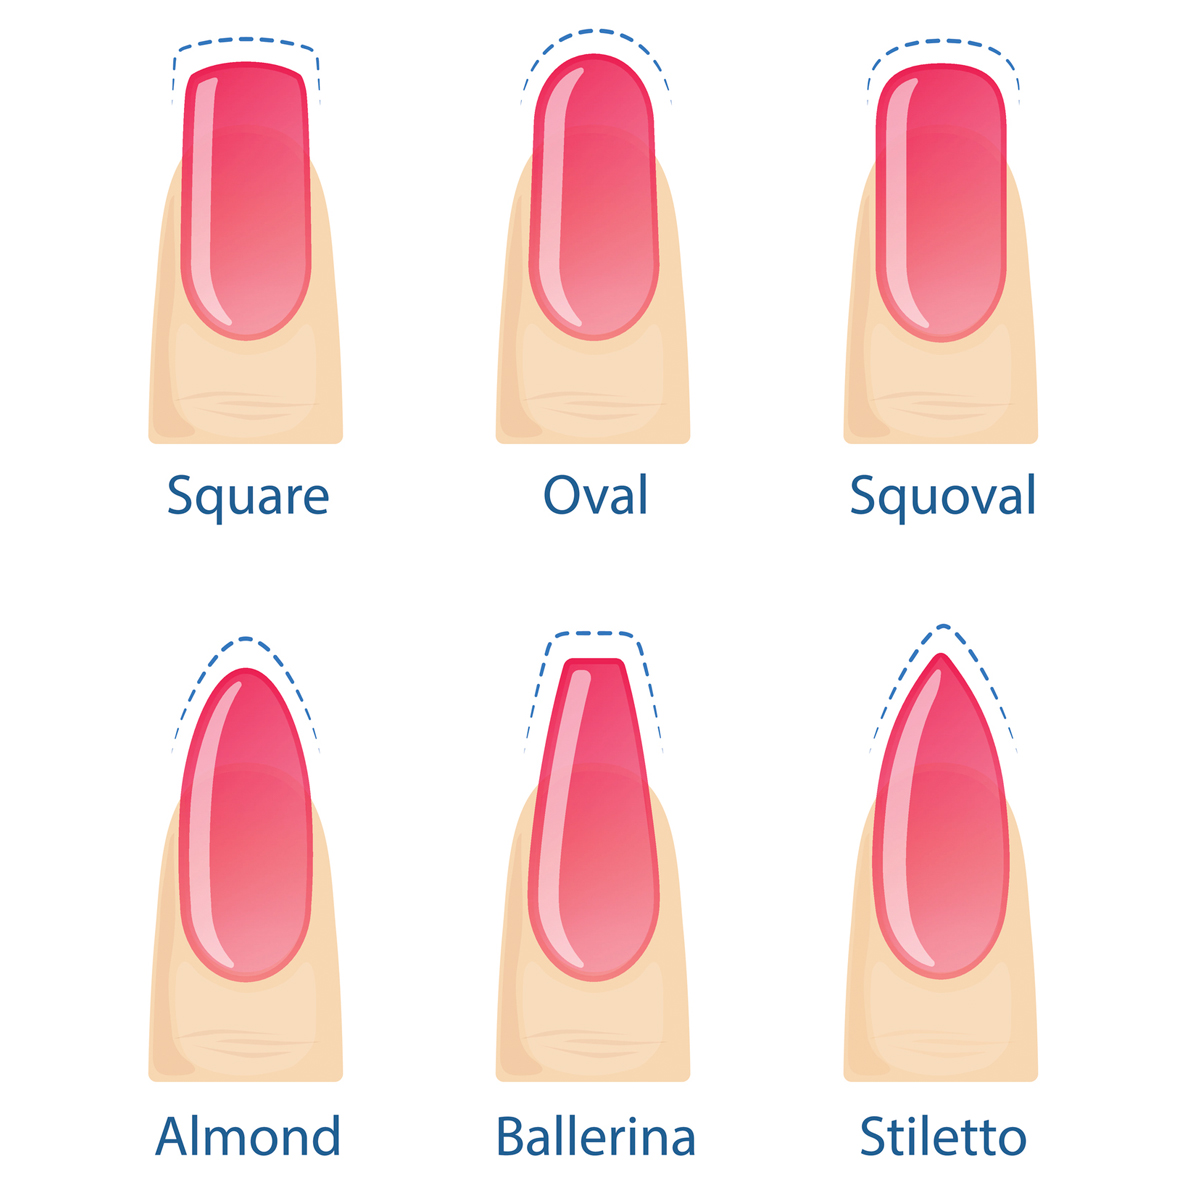 8 nail shapes to know before you get your next manicure